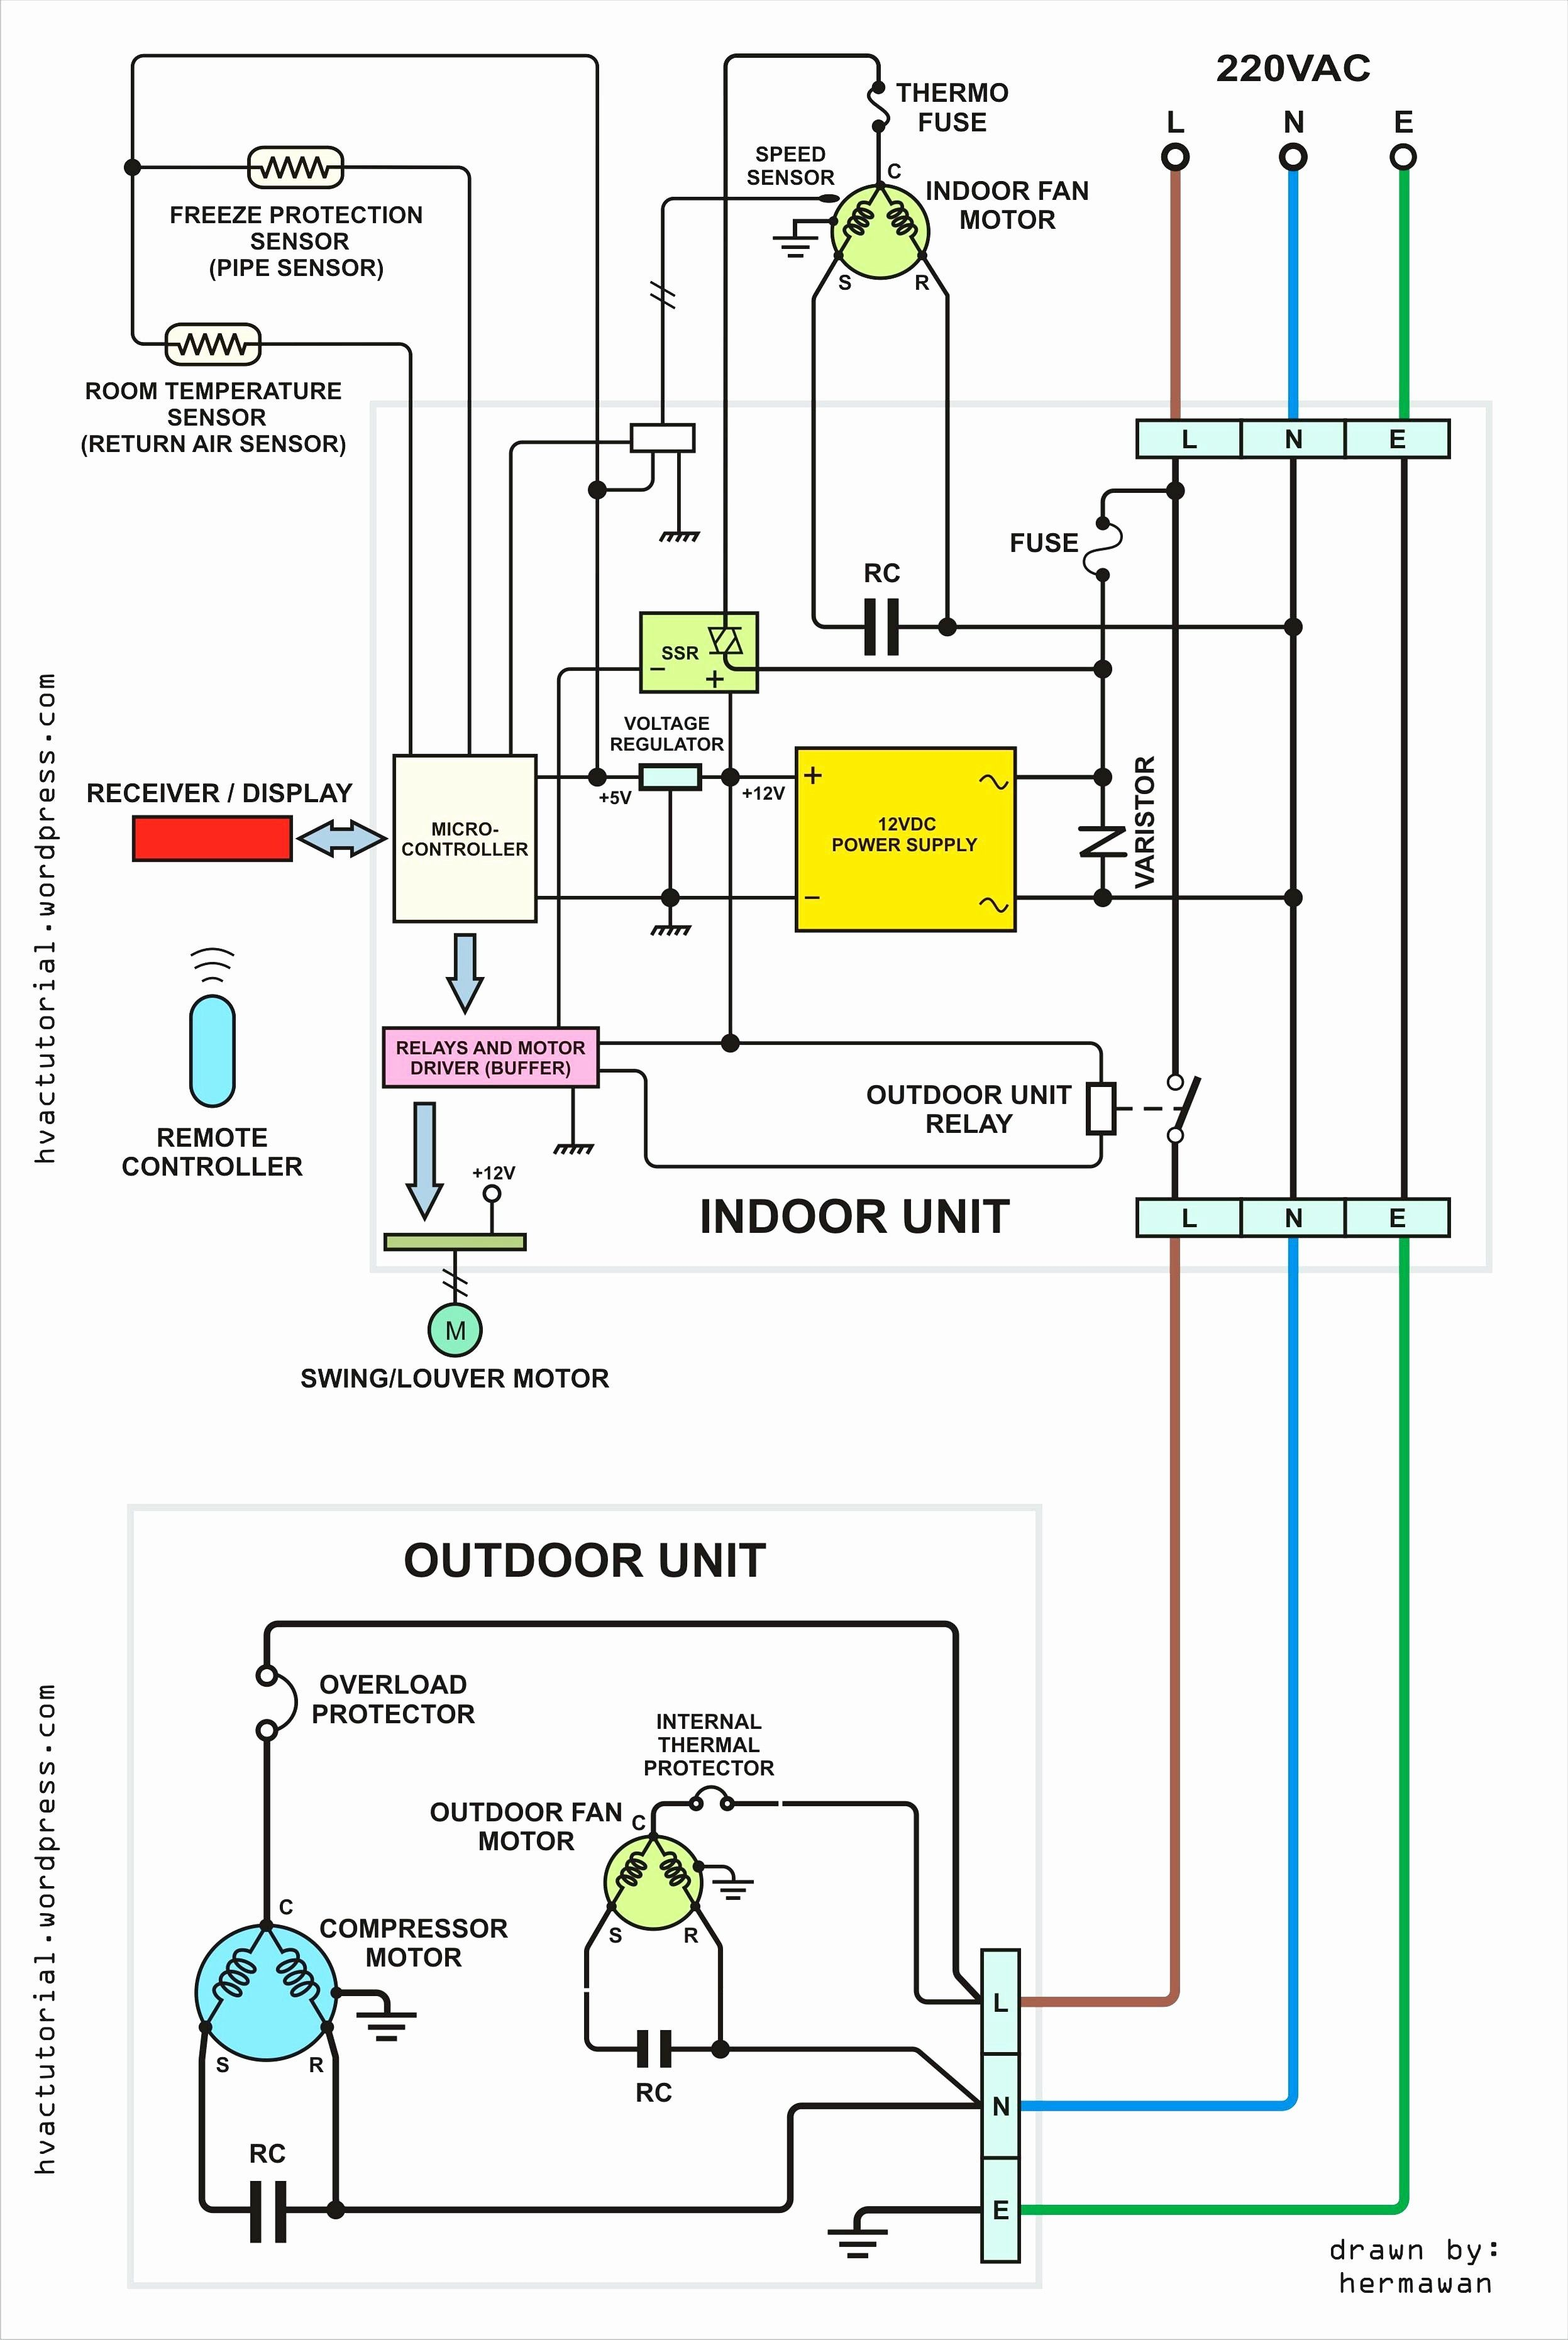 20 Auto Car Wiring Diagram Software References Https Bacamajalah Com 20 Auto Car Wi Electrical Wiring Diagram Electrical Circuit Diagram Electrical Diagram